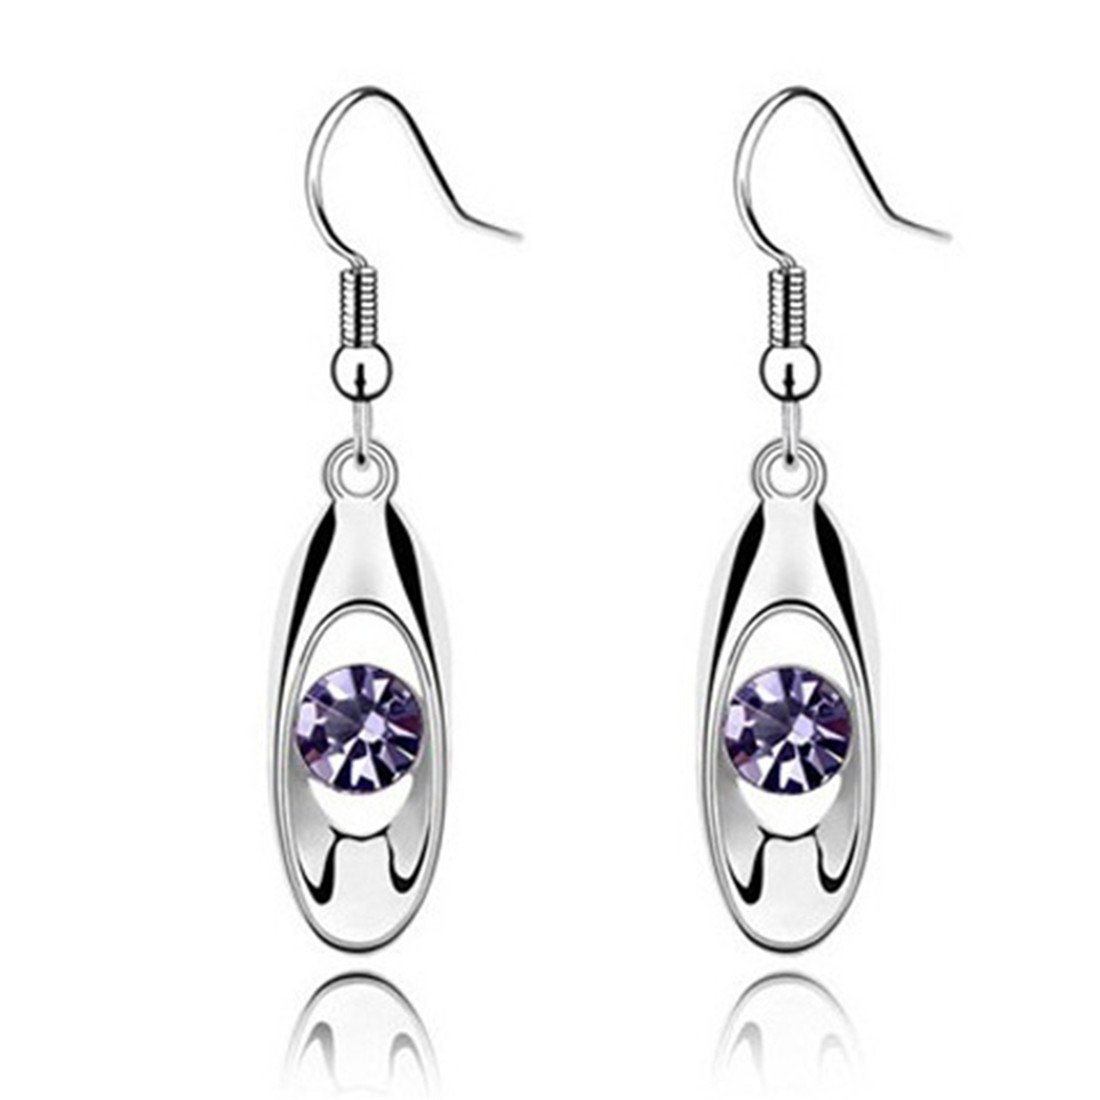 UNKE Fashion Long Drop Dangle Hook Earrings with Sparkling Crystal Valentine's Day Gift Jewelry for Women,Purple